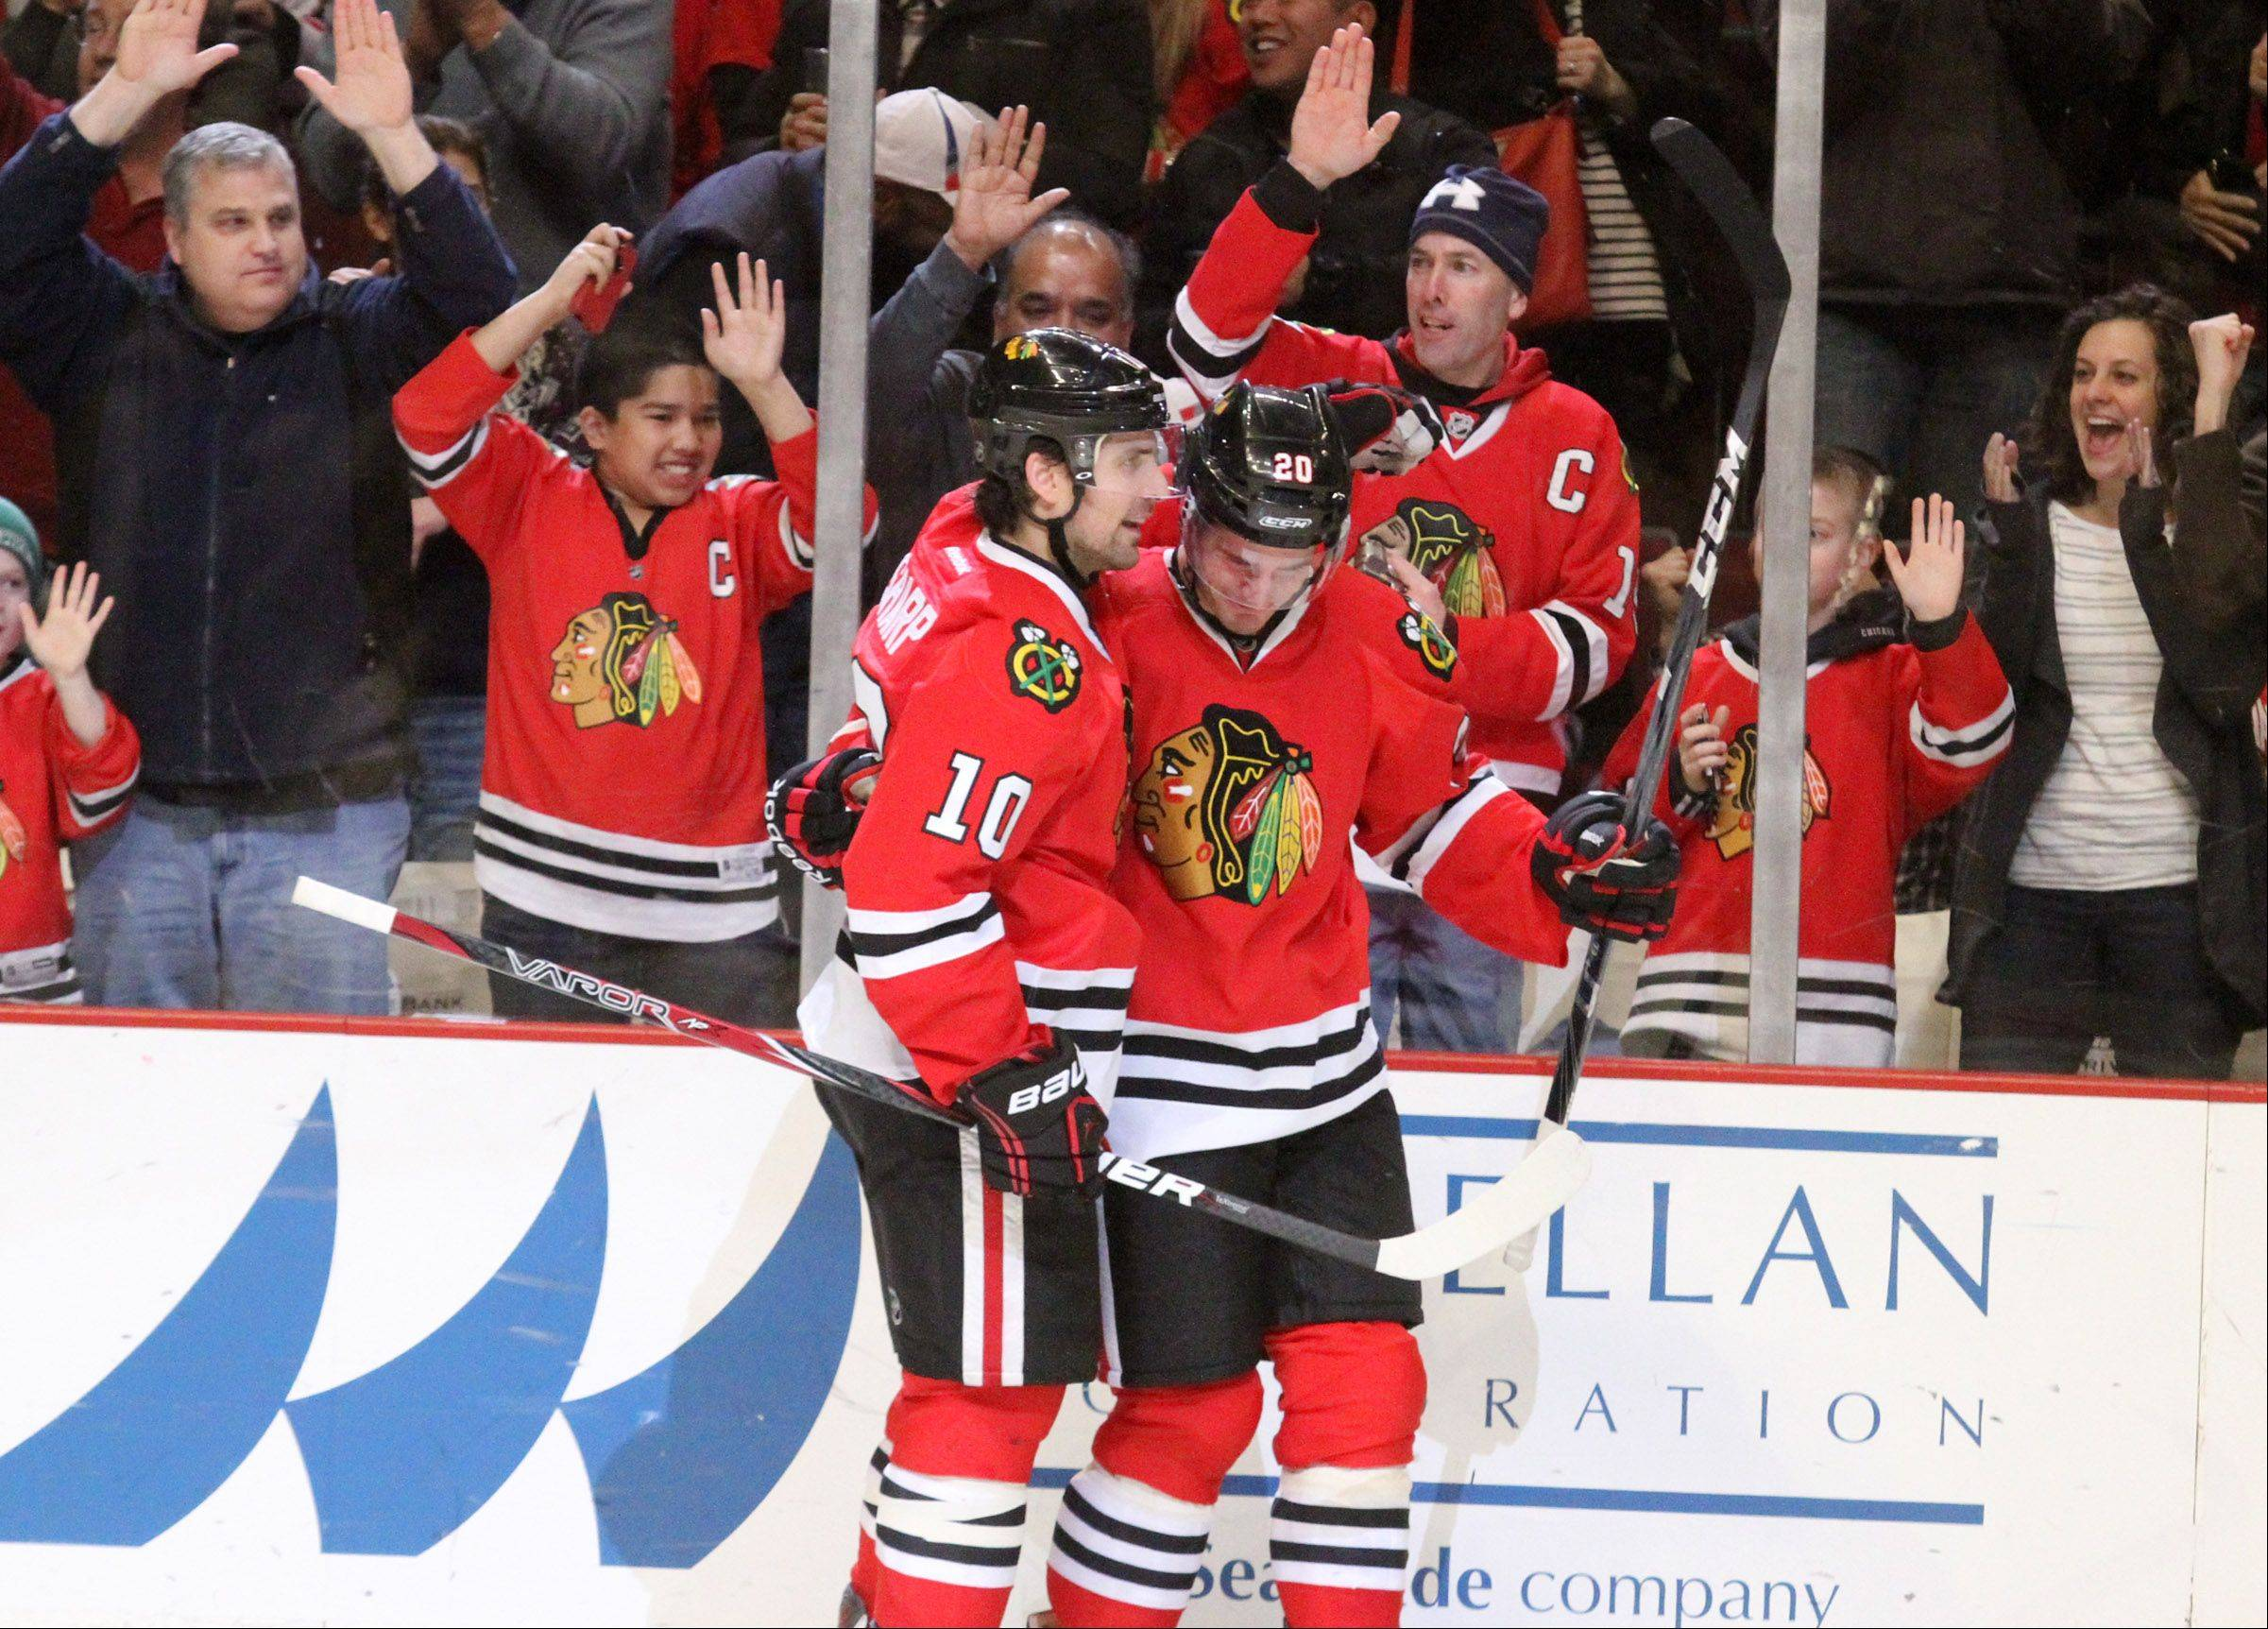 Images: Blackhawks vs. Sharks